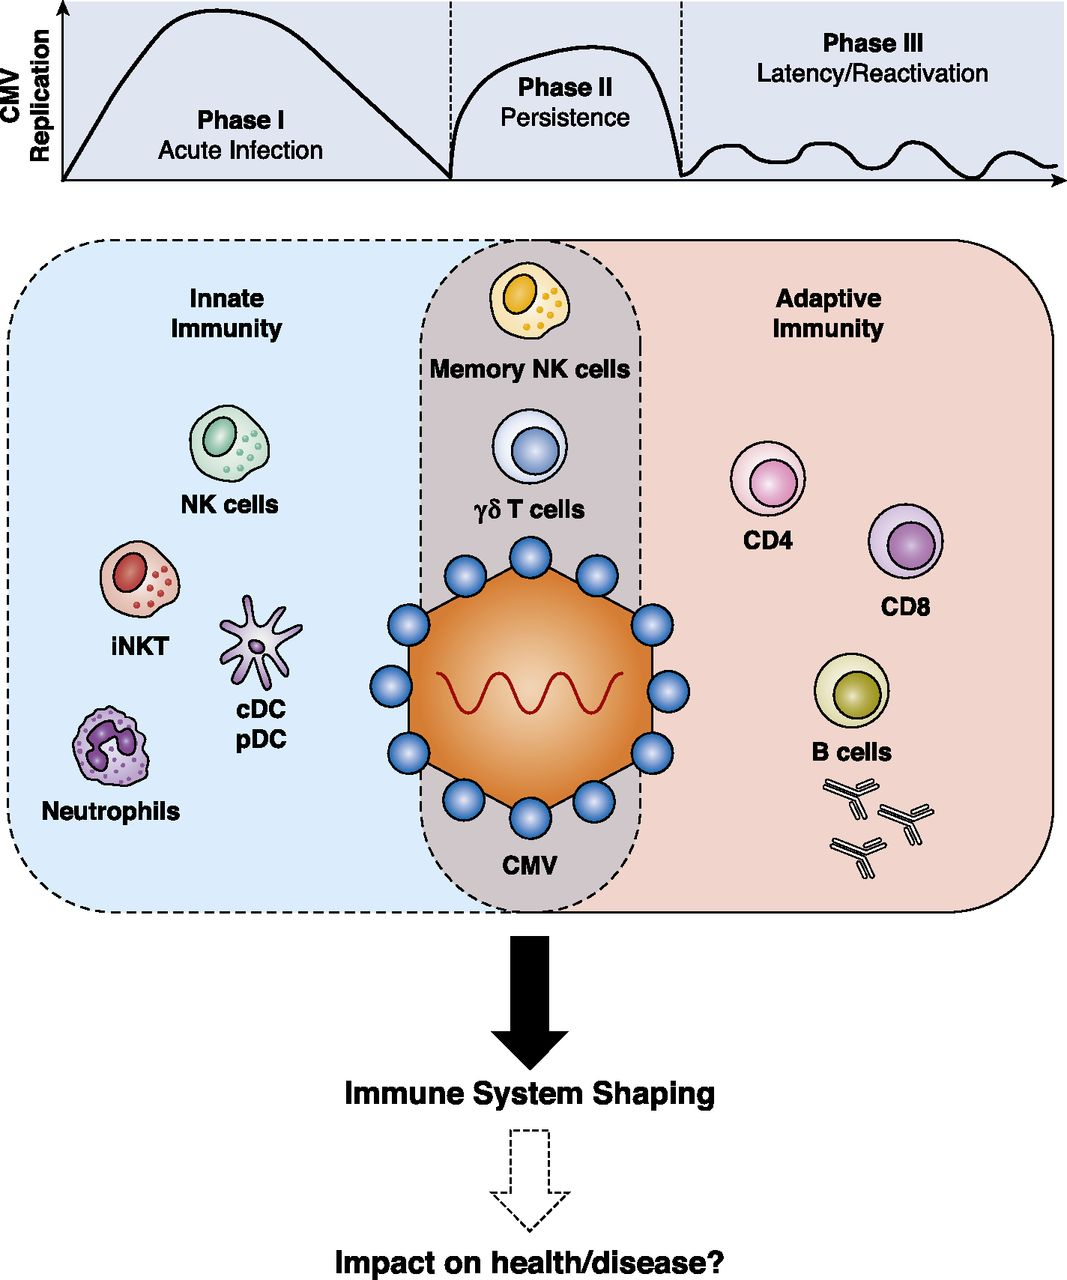 Cytomegalovirus Shape Shifting The Immune System The Journal Of